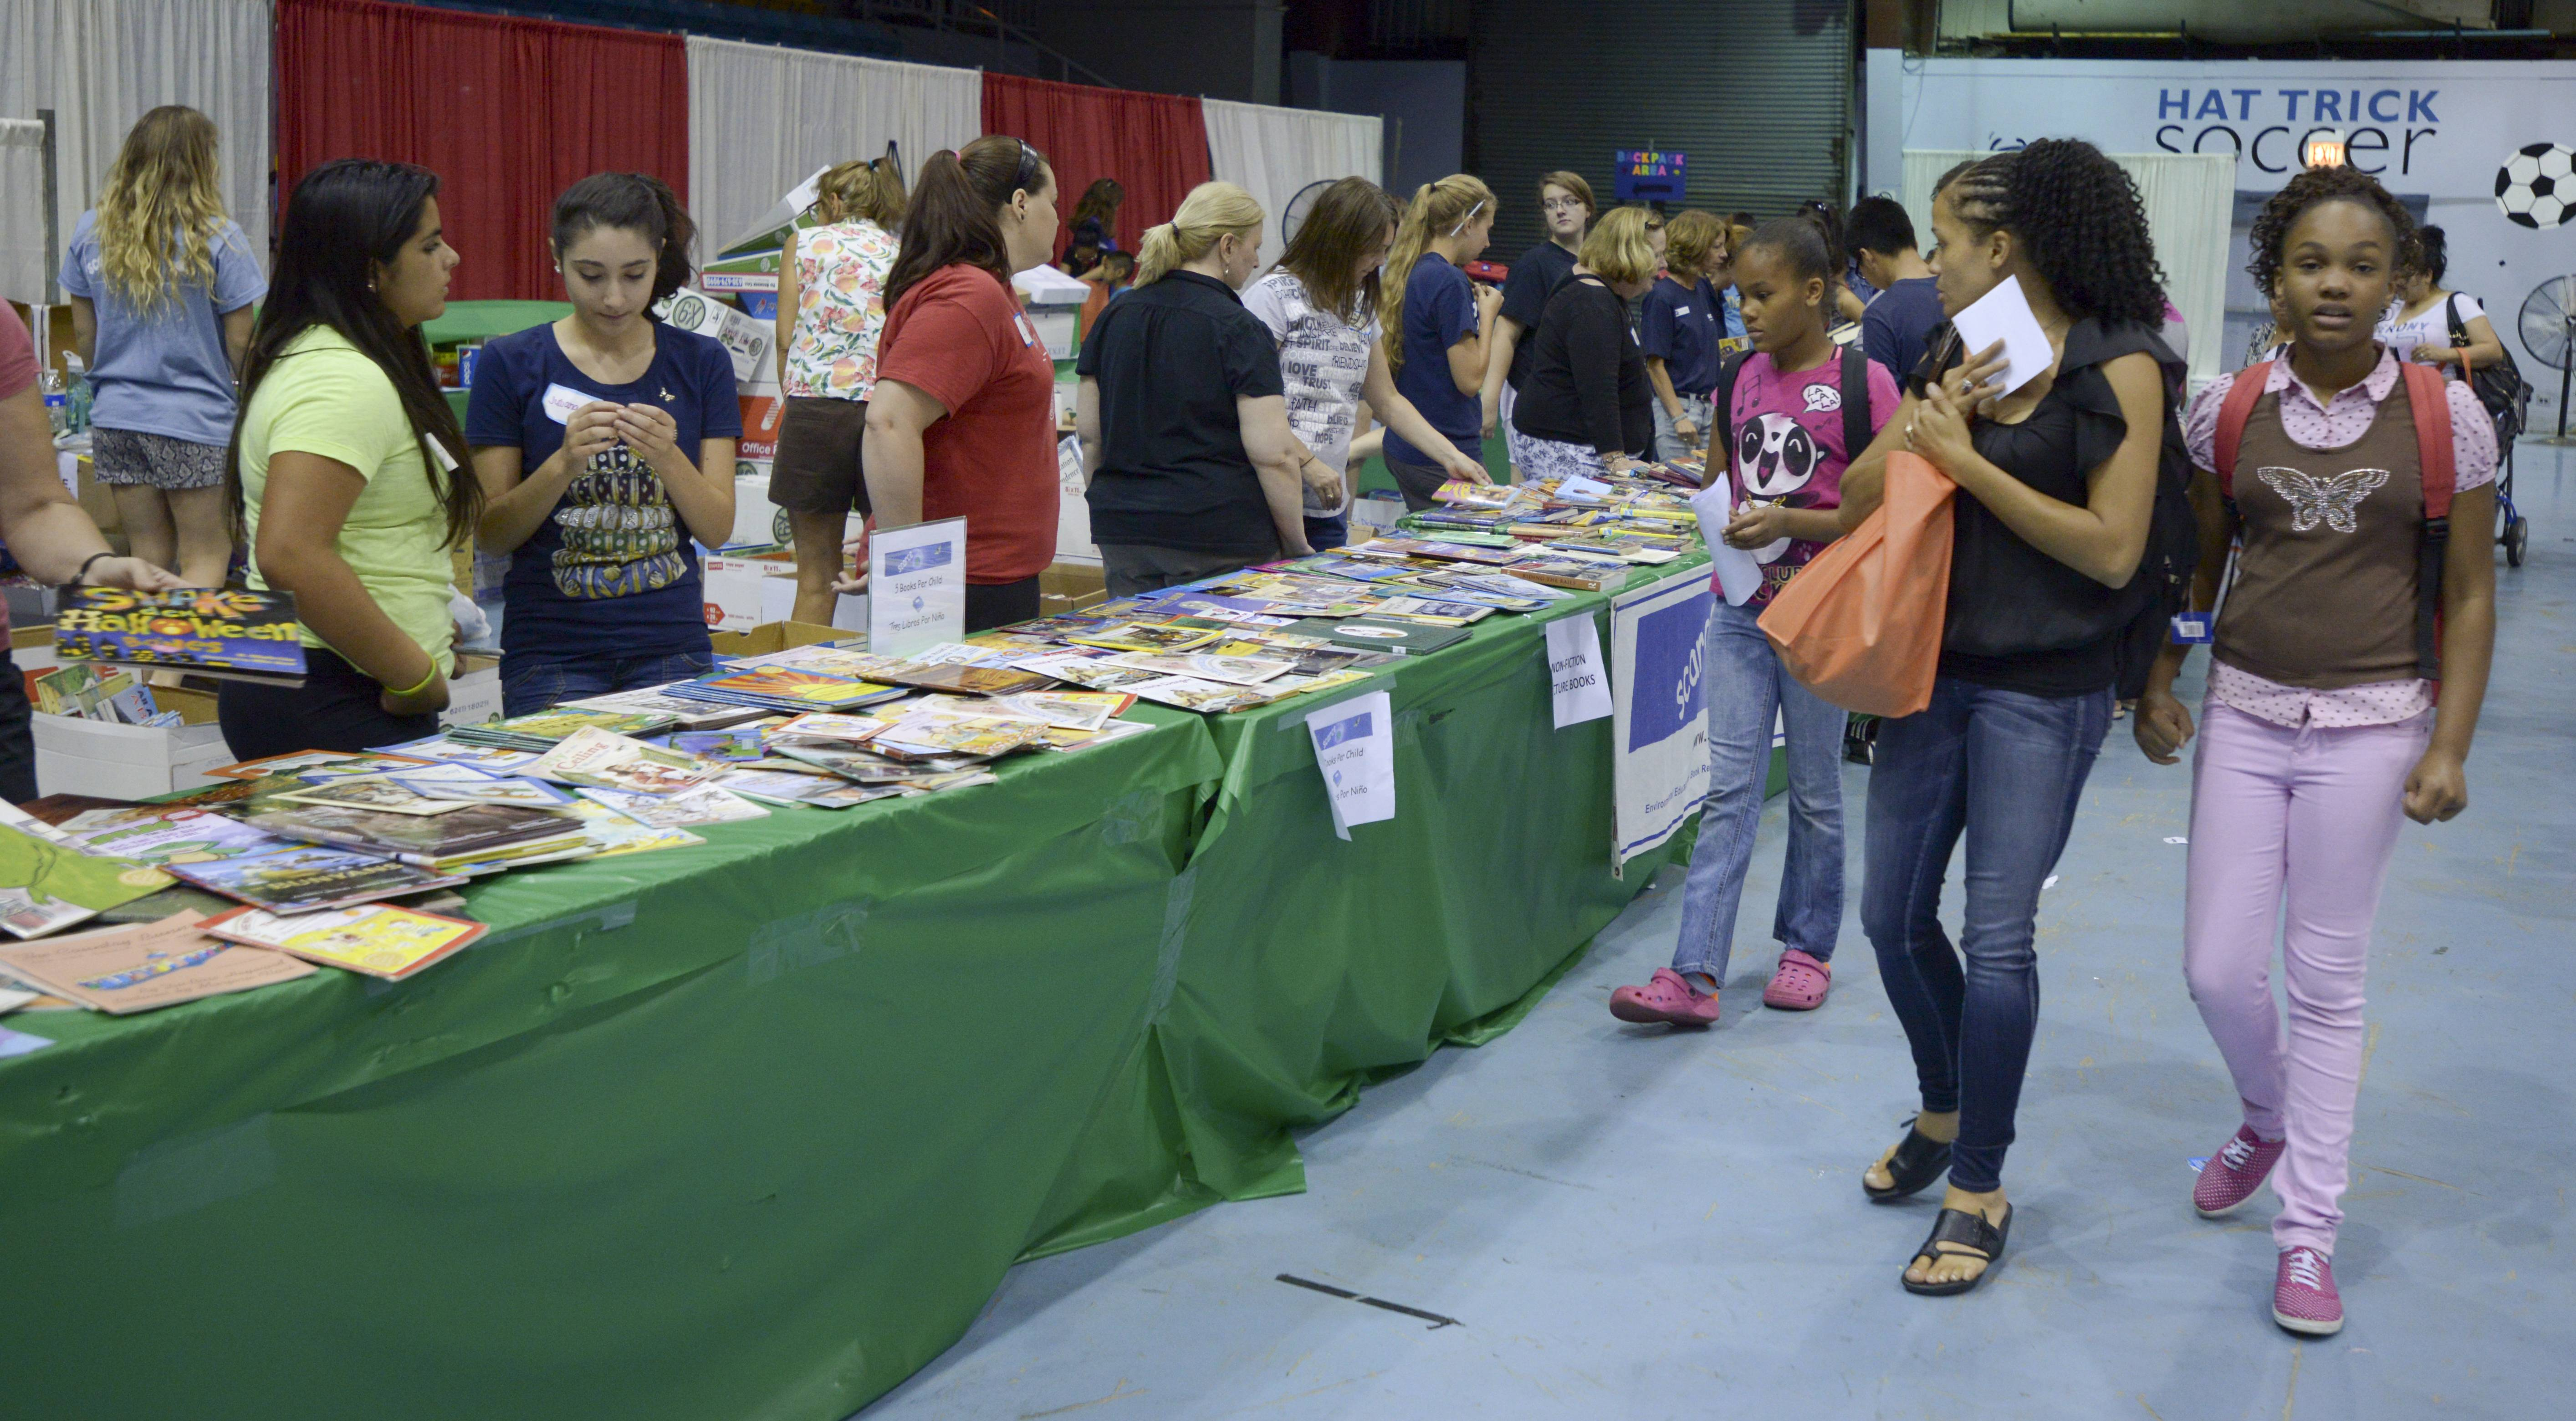 Tables full of books were available for children to choose from during Catholic Charities' Back to School Fair at the Odeum Expo Center in Villa Park.